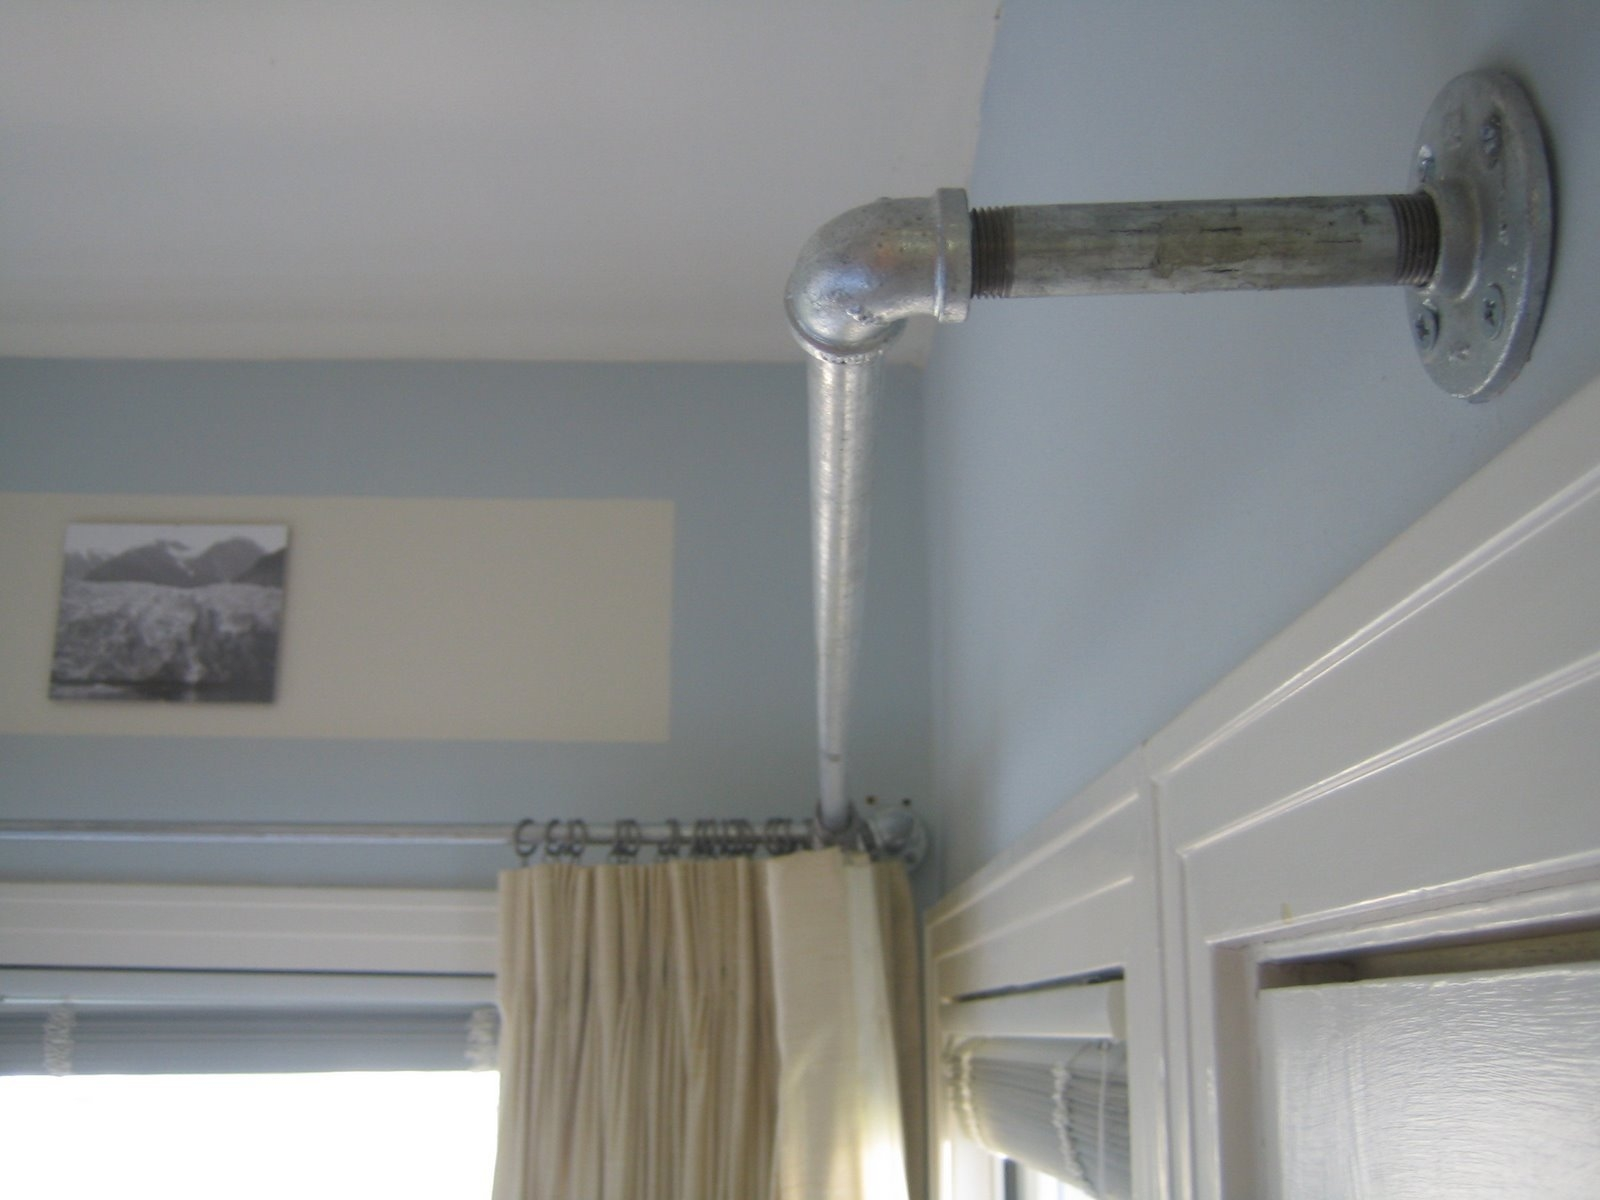 Shower Curtain For L Shaped Rod Inside L Shaped Shower Curtain Rods (Image 22 of 25)